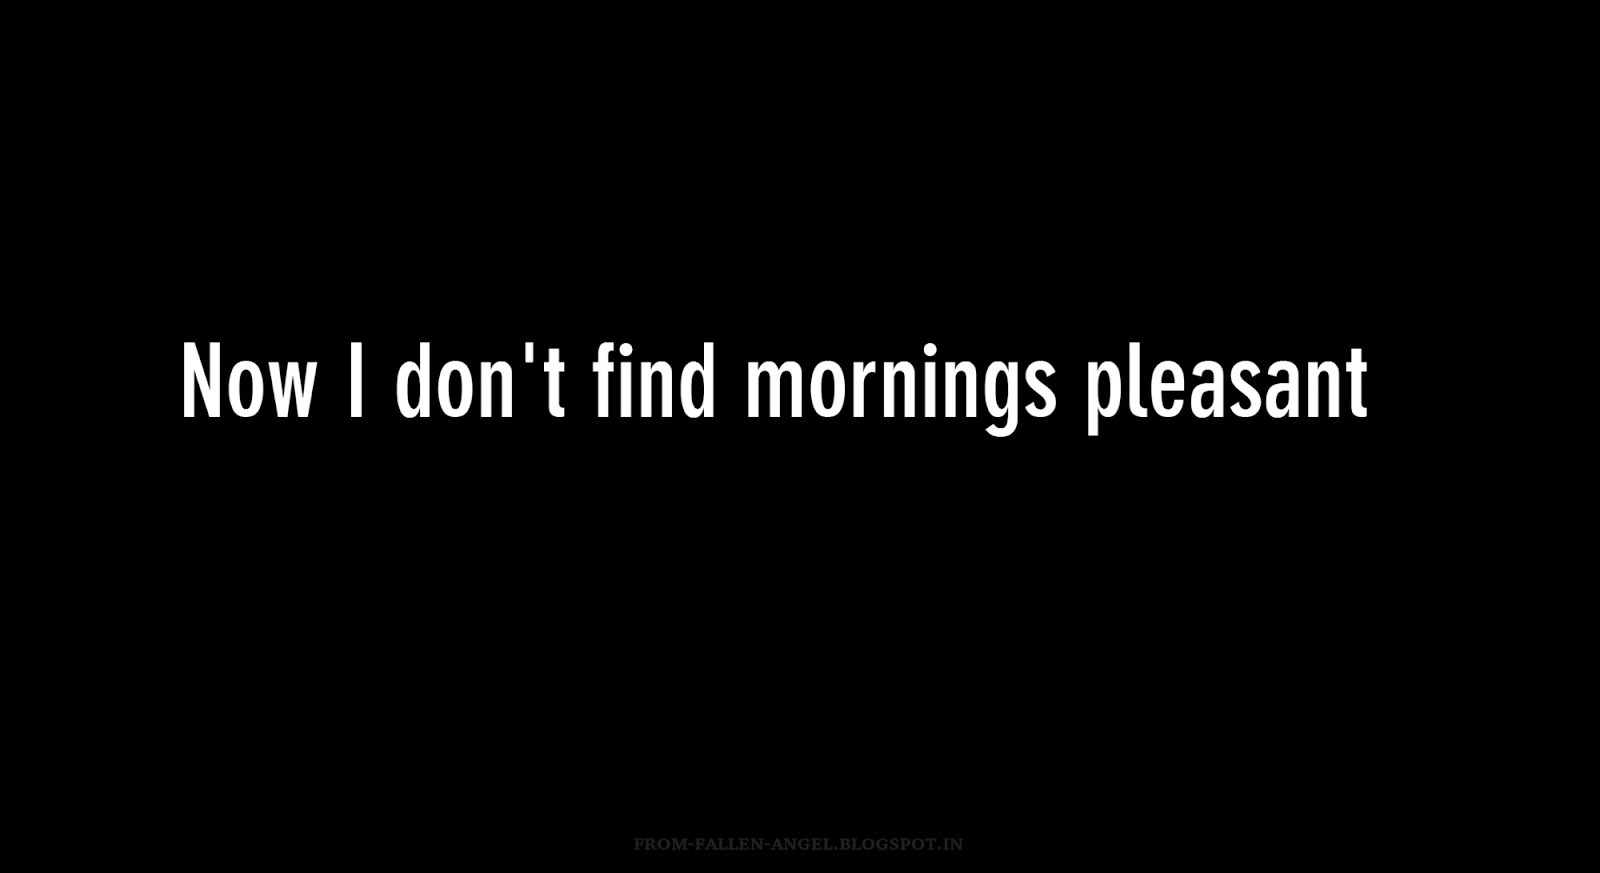 Now I don't find mornings pleasant